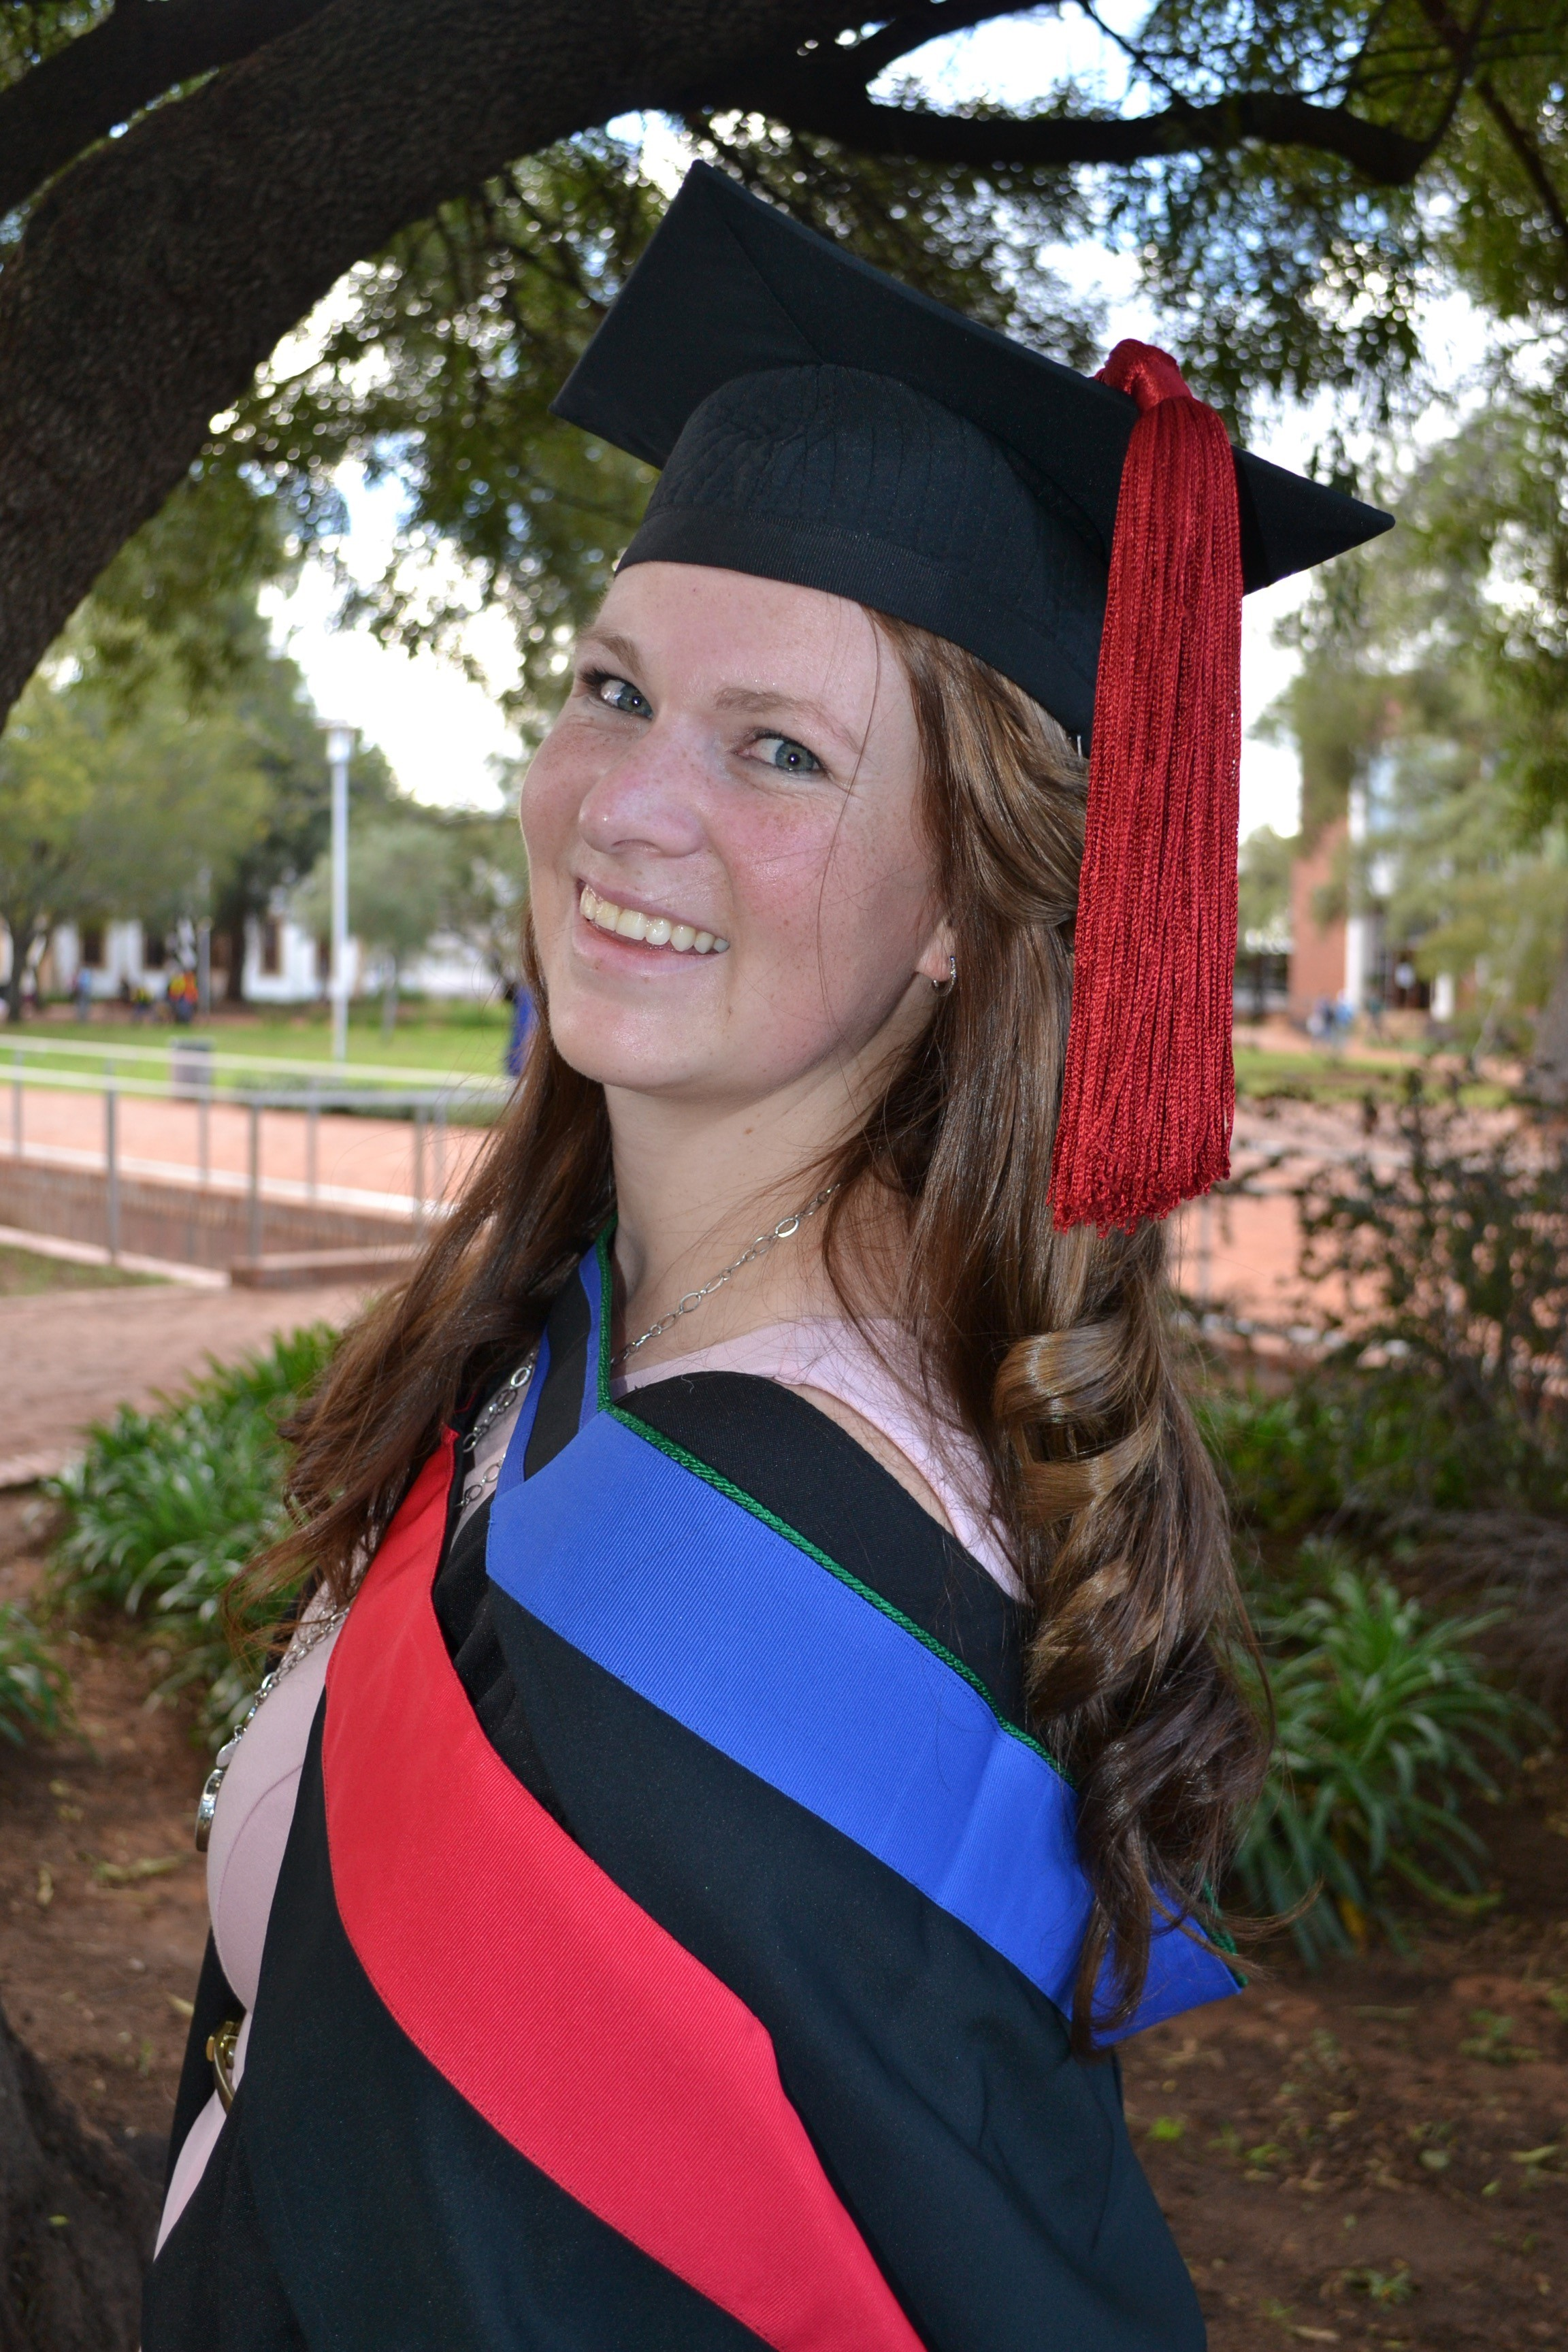 Kyla Dooley (Natural and Agricultural Sciences Faculty) was the first runner-up.